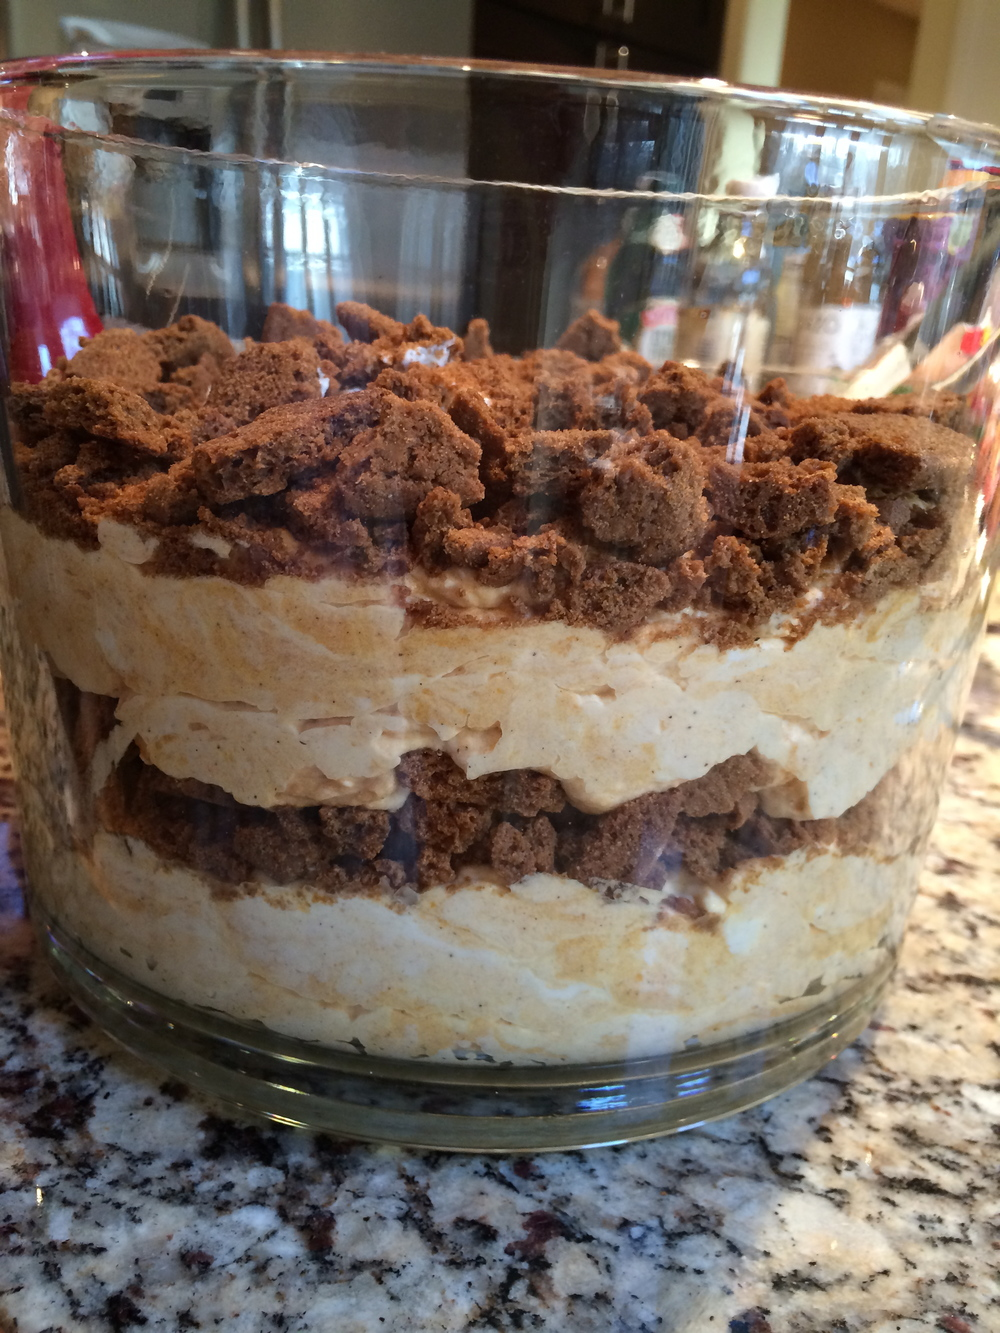 layer with crumbled cookies